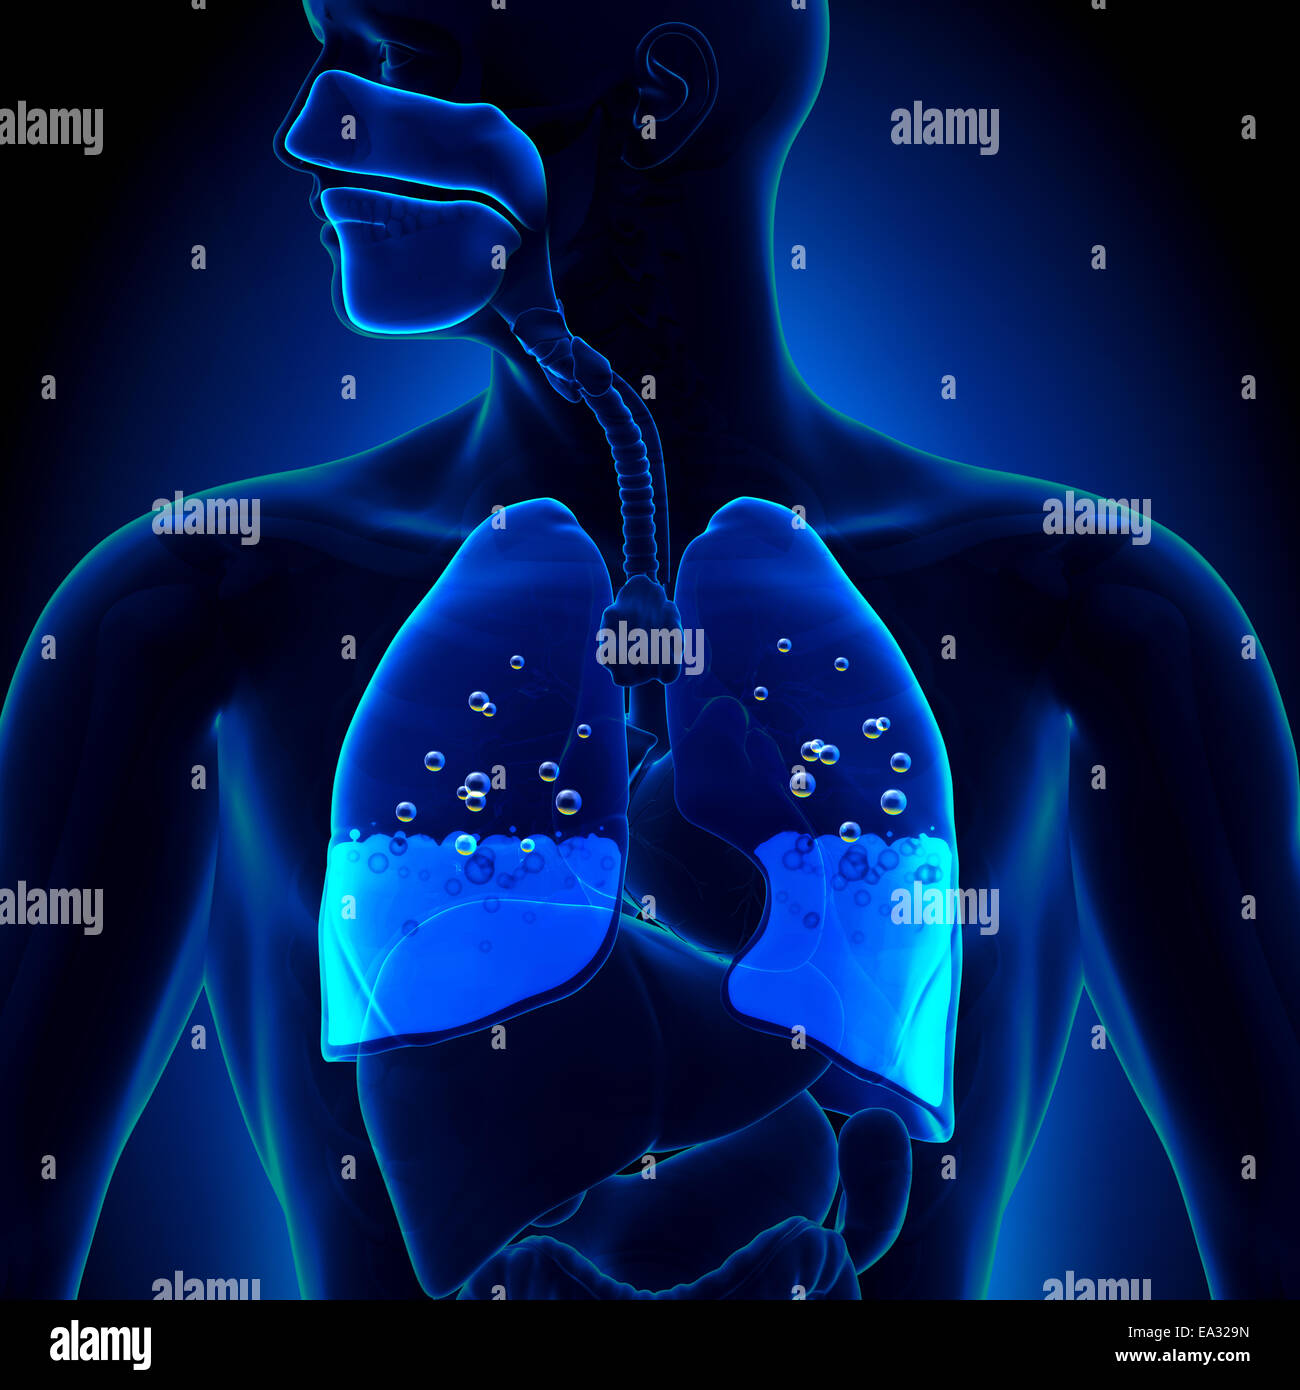 Pulmonary Edema - Water in Lungs - Stock Image